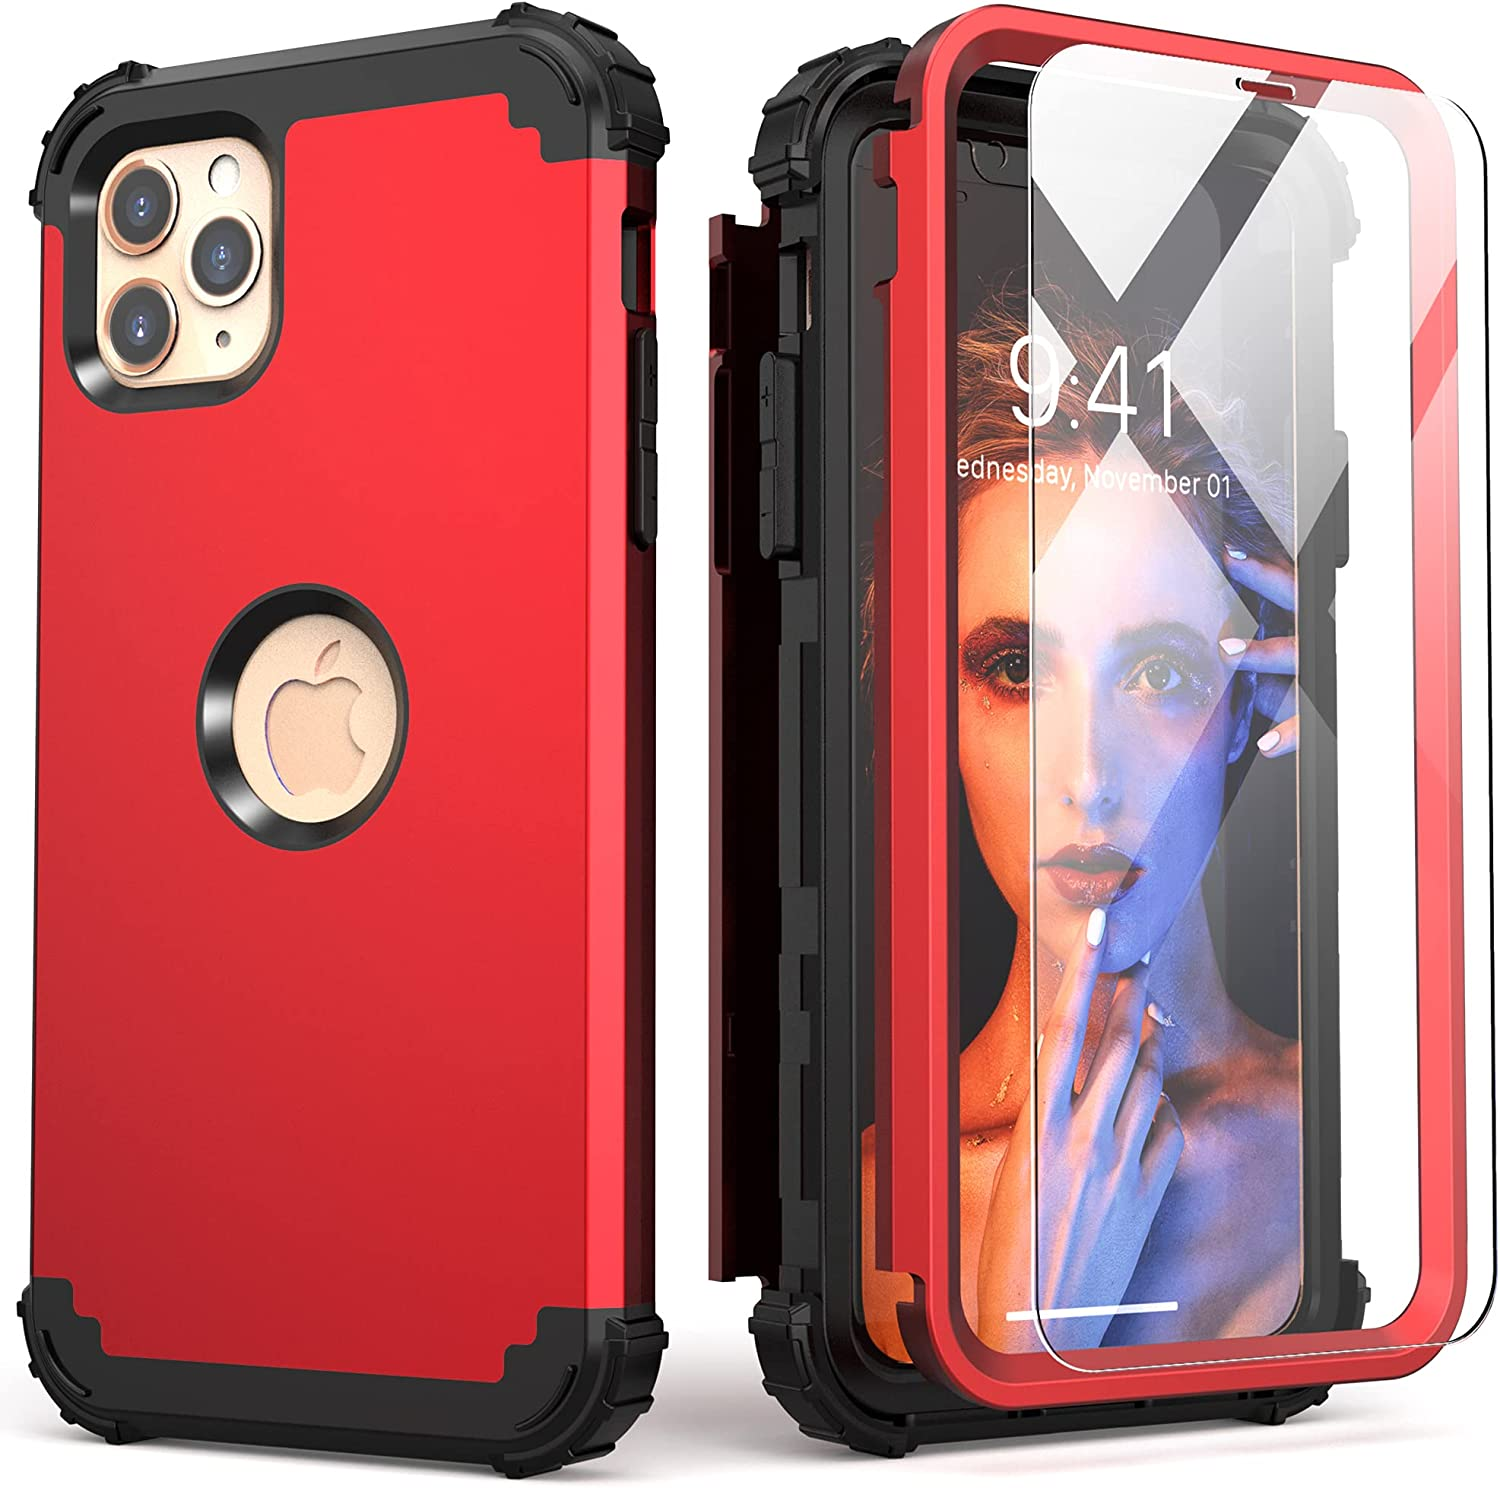 iPhone 11 Pro Max Case with Tempered Glass,IDweel Hybrid 3 in 1 Shockproof Slim Fit Heavy Duty Protection Hard PC Cover Soft Silicone Rugged Bumper Full Body Case for iPhone 11 Pro Max, Red